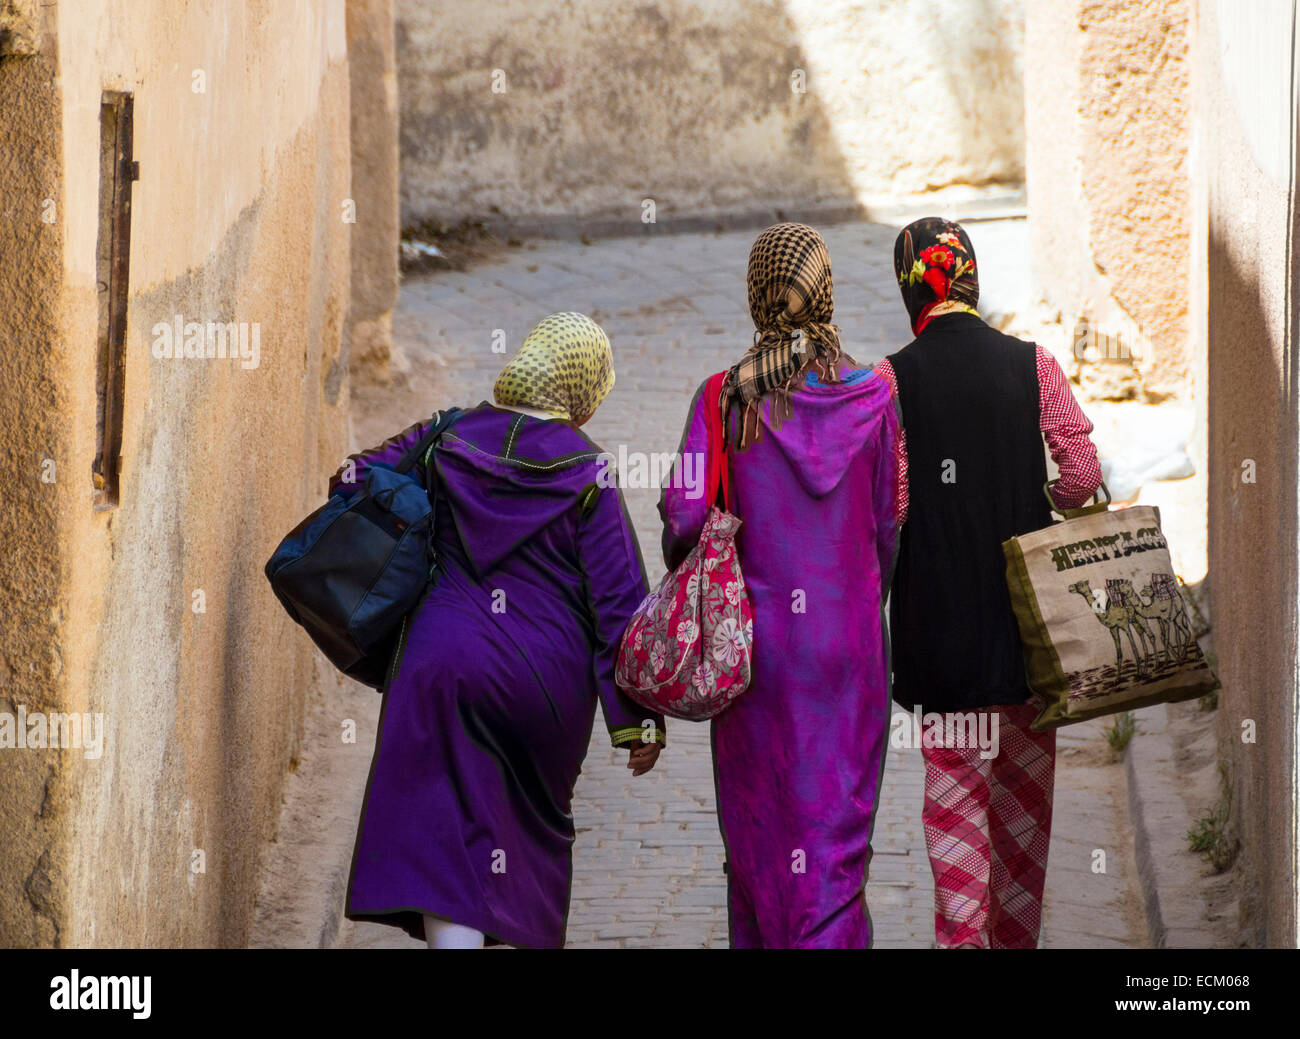 In the Medina, Fes or Fez, Morocco - Stock Image